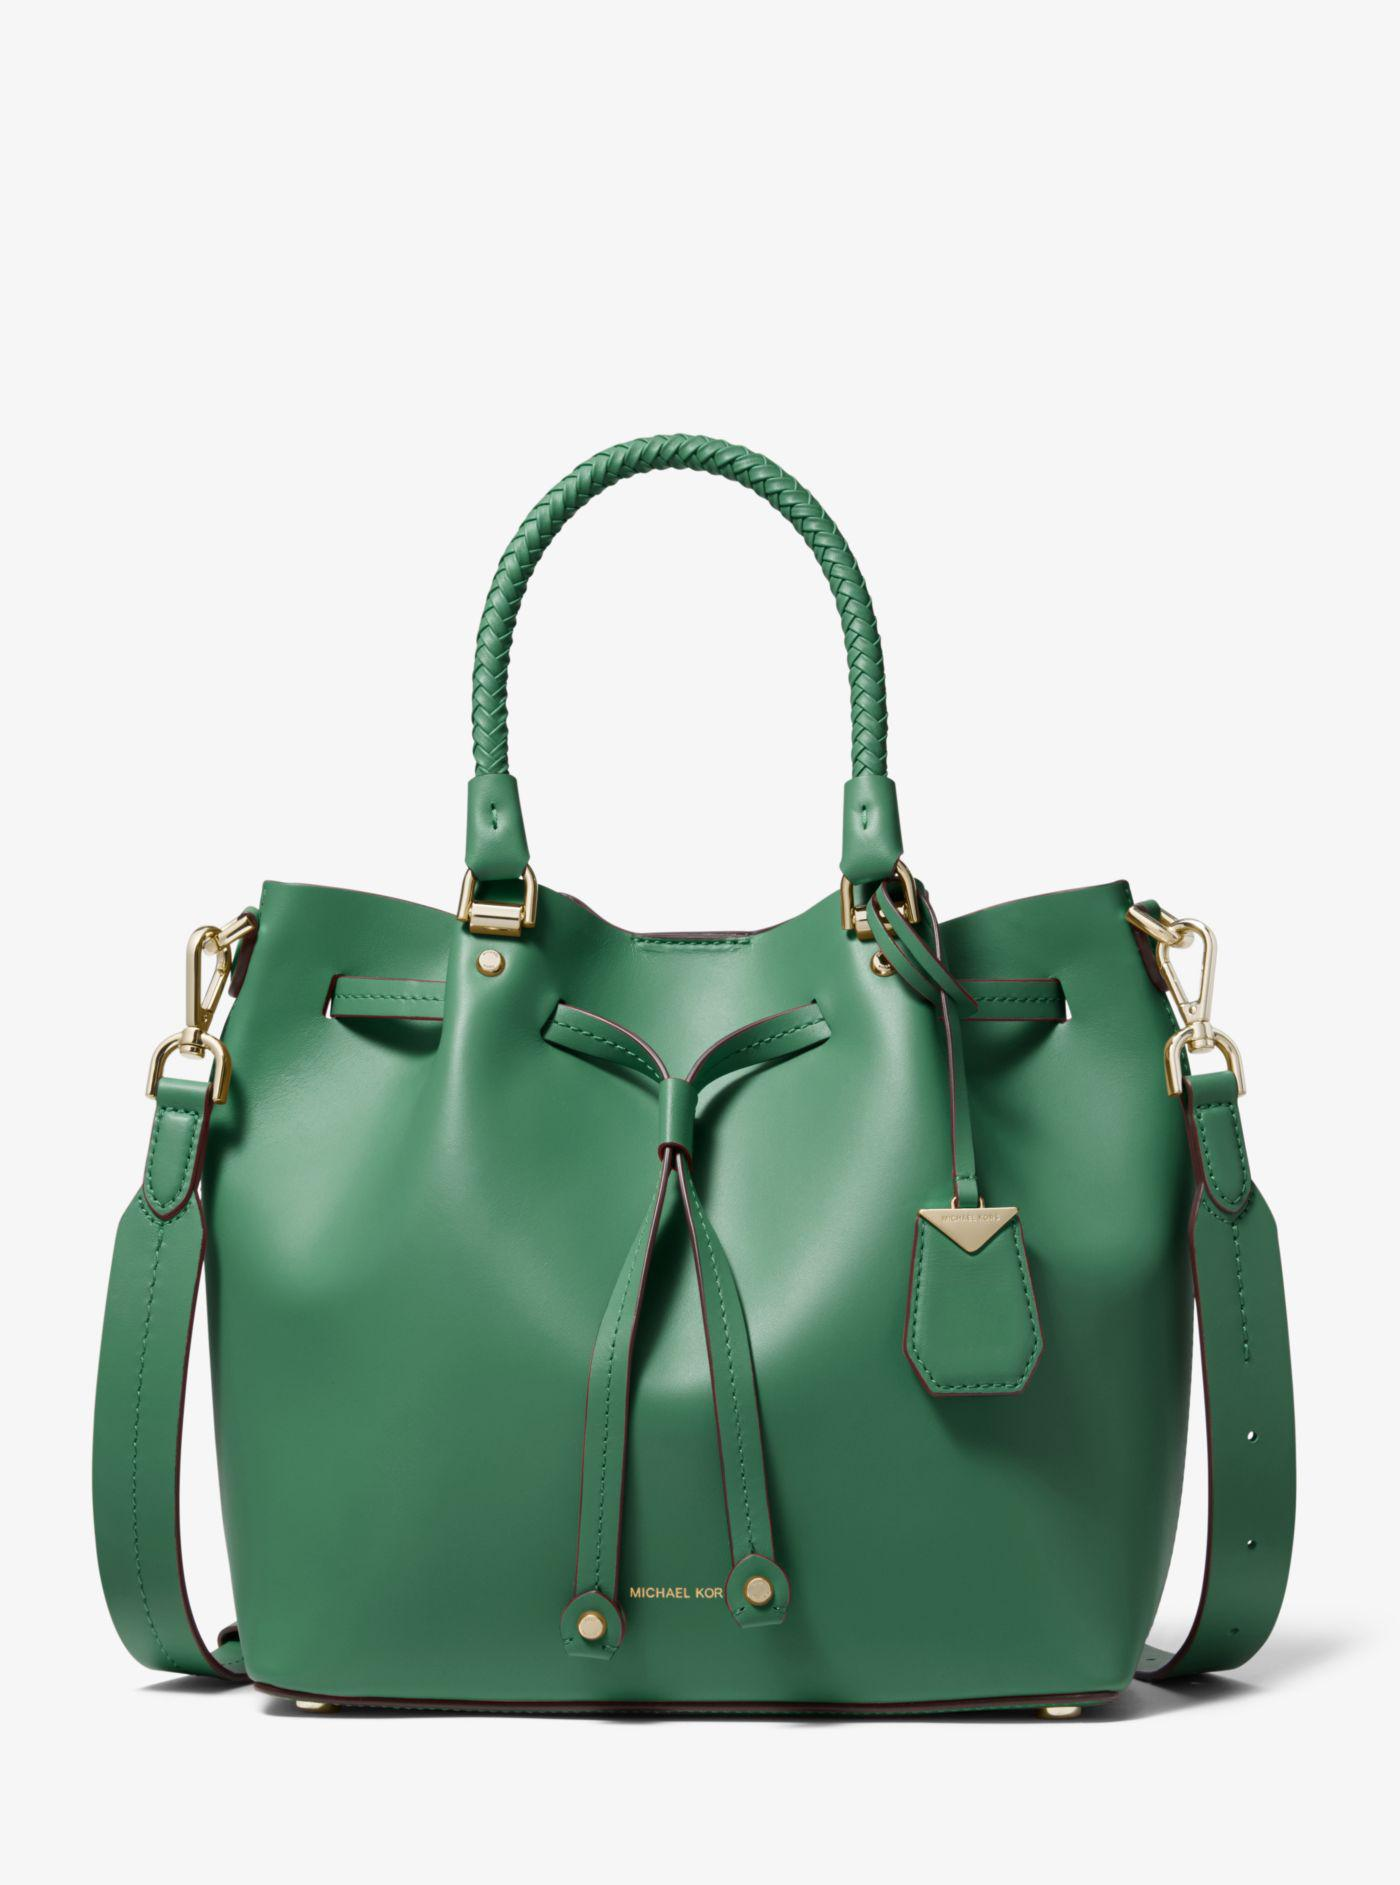 922aff187df7 Michael Kors Blakely Medium Leather Bucket Bag in Green - Lyst